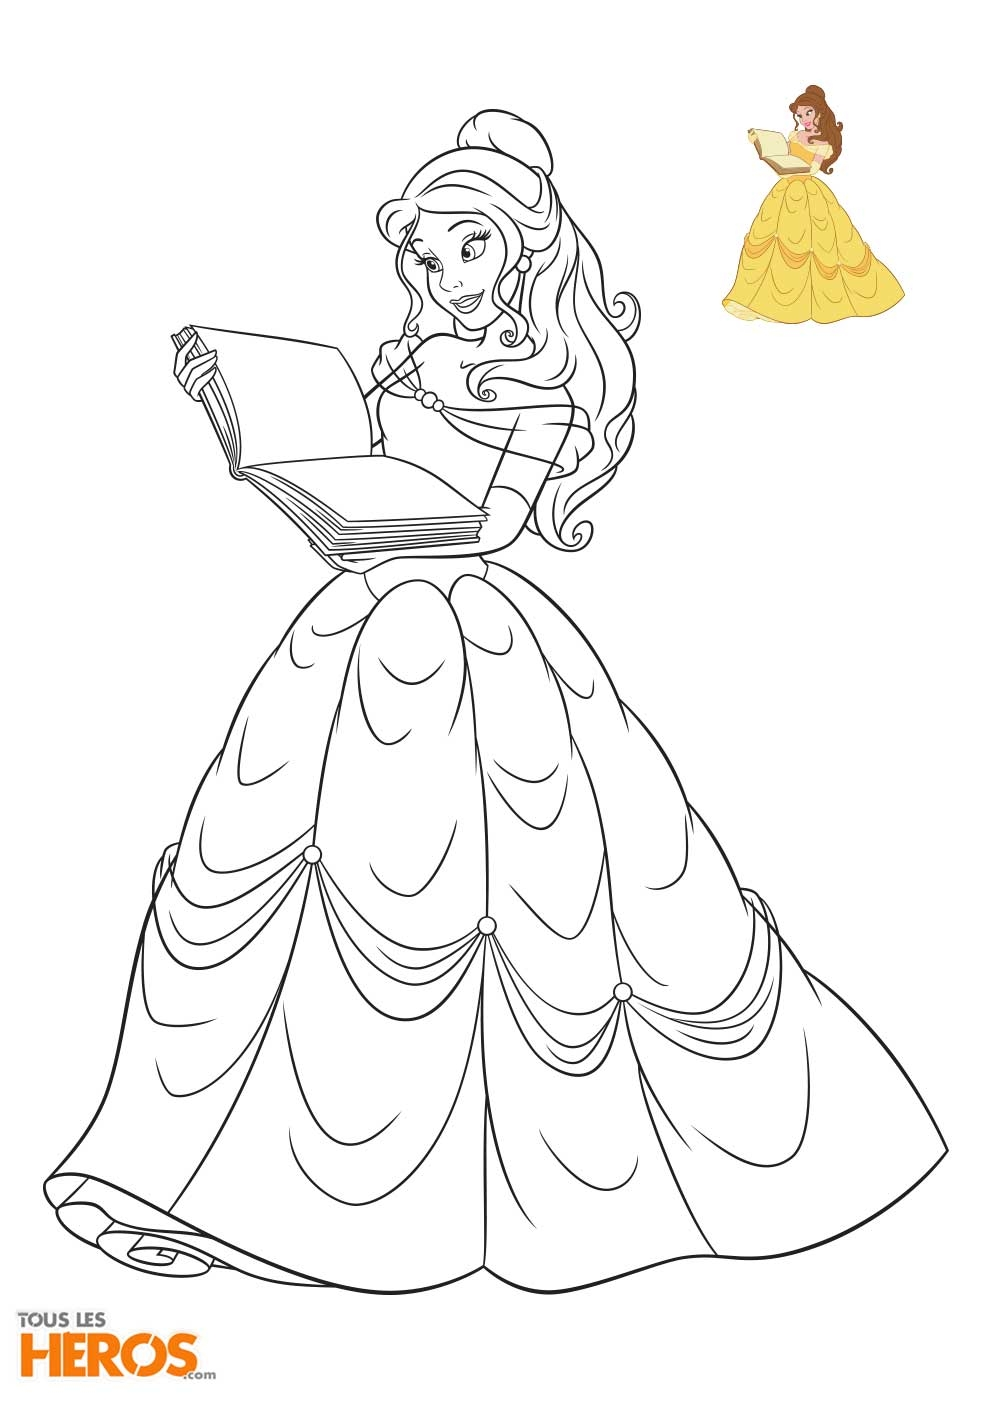 princess tiana coloring pages - coloriages disney princesses